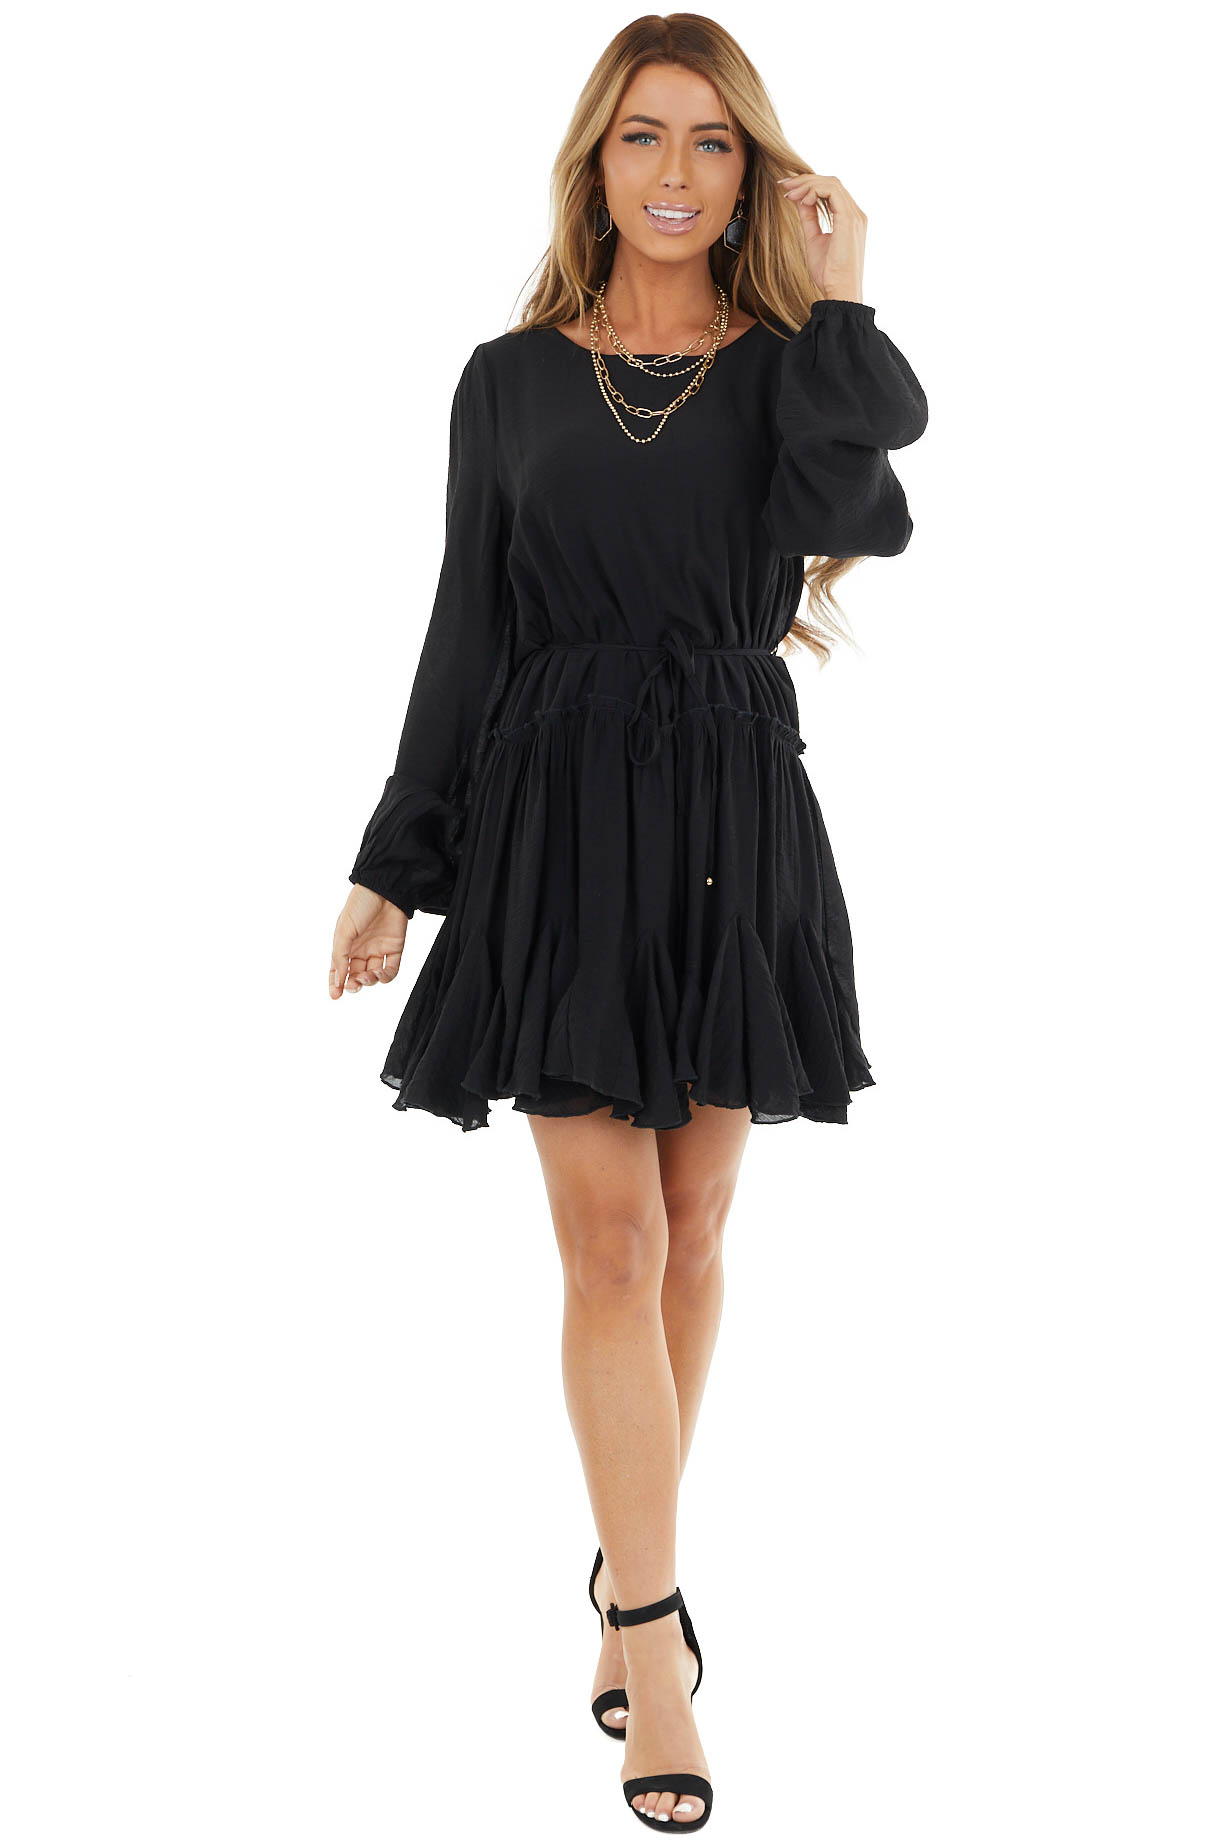 Black Long Sleeve Dress with Waist Tie and Ruffle Details